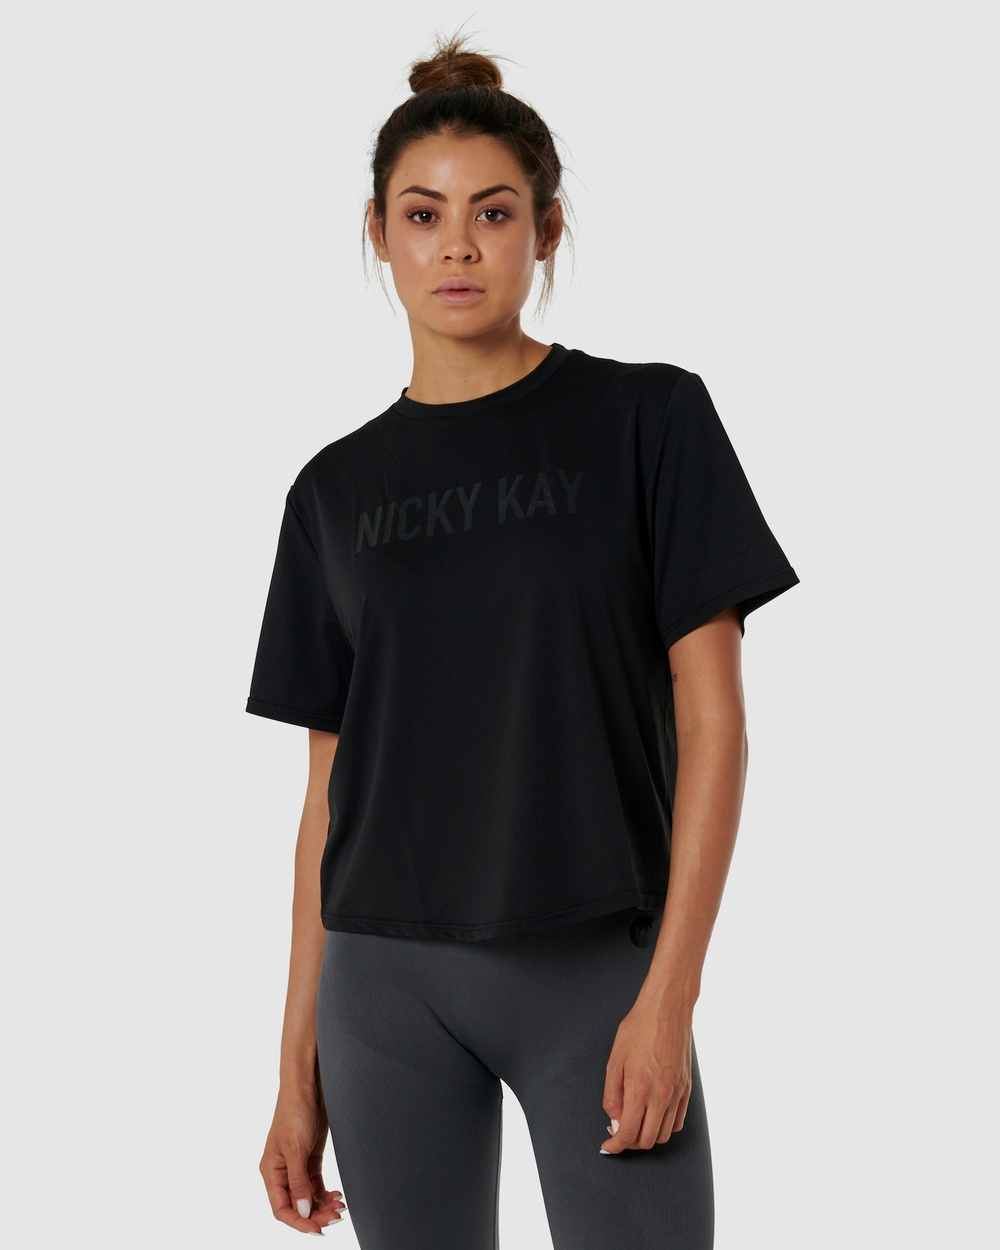 Nicky Kay QuickDry Logo Tee Muscle Tops Black